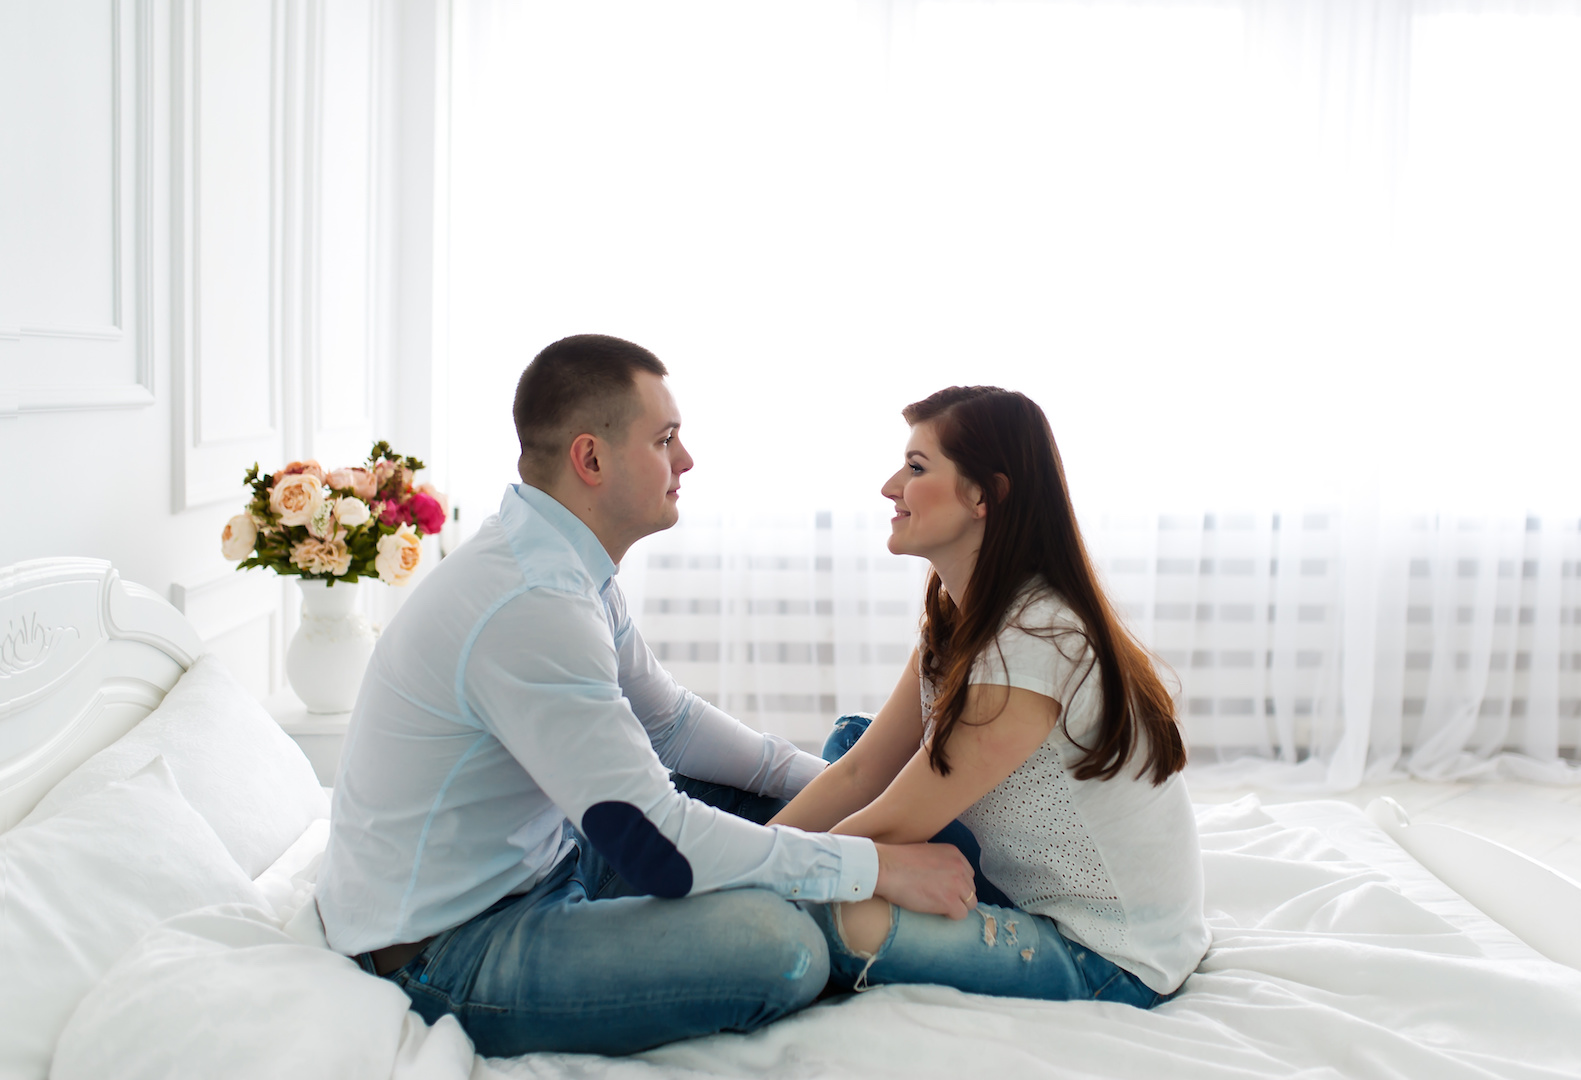 Marriage Bed Undefiled - AdobeStock_105352728